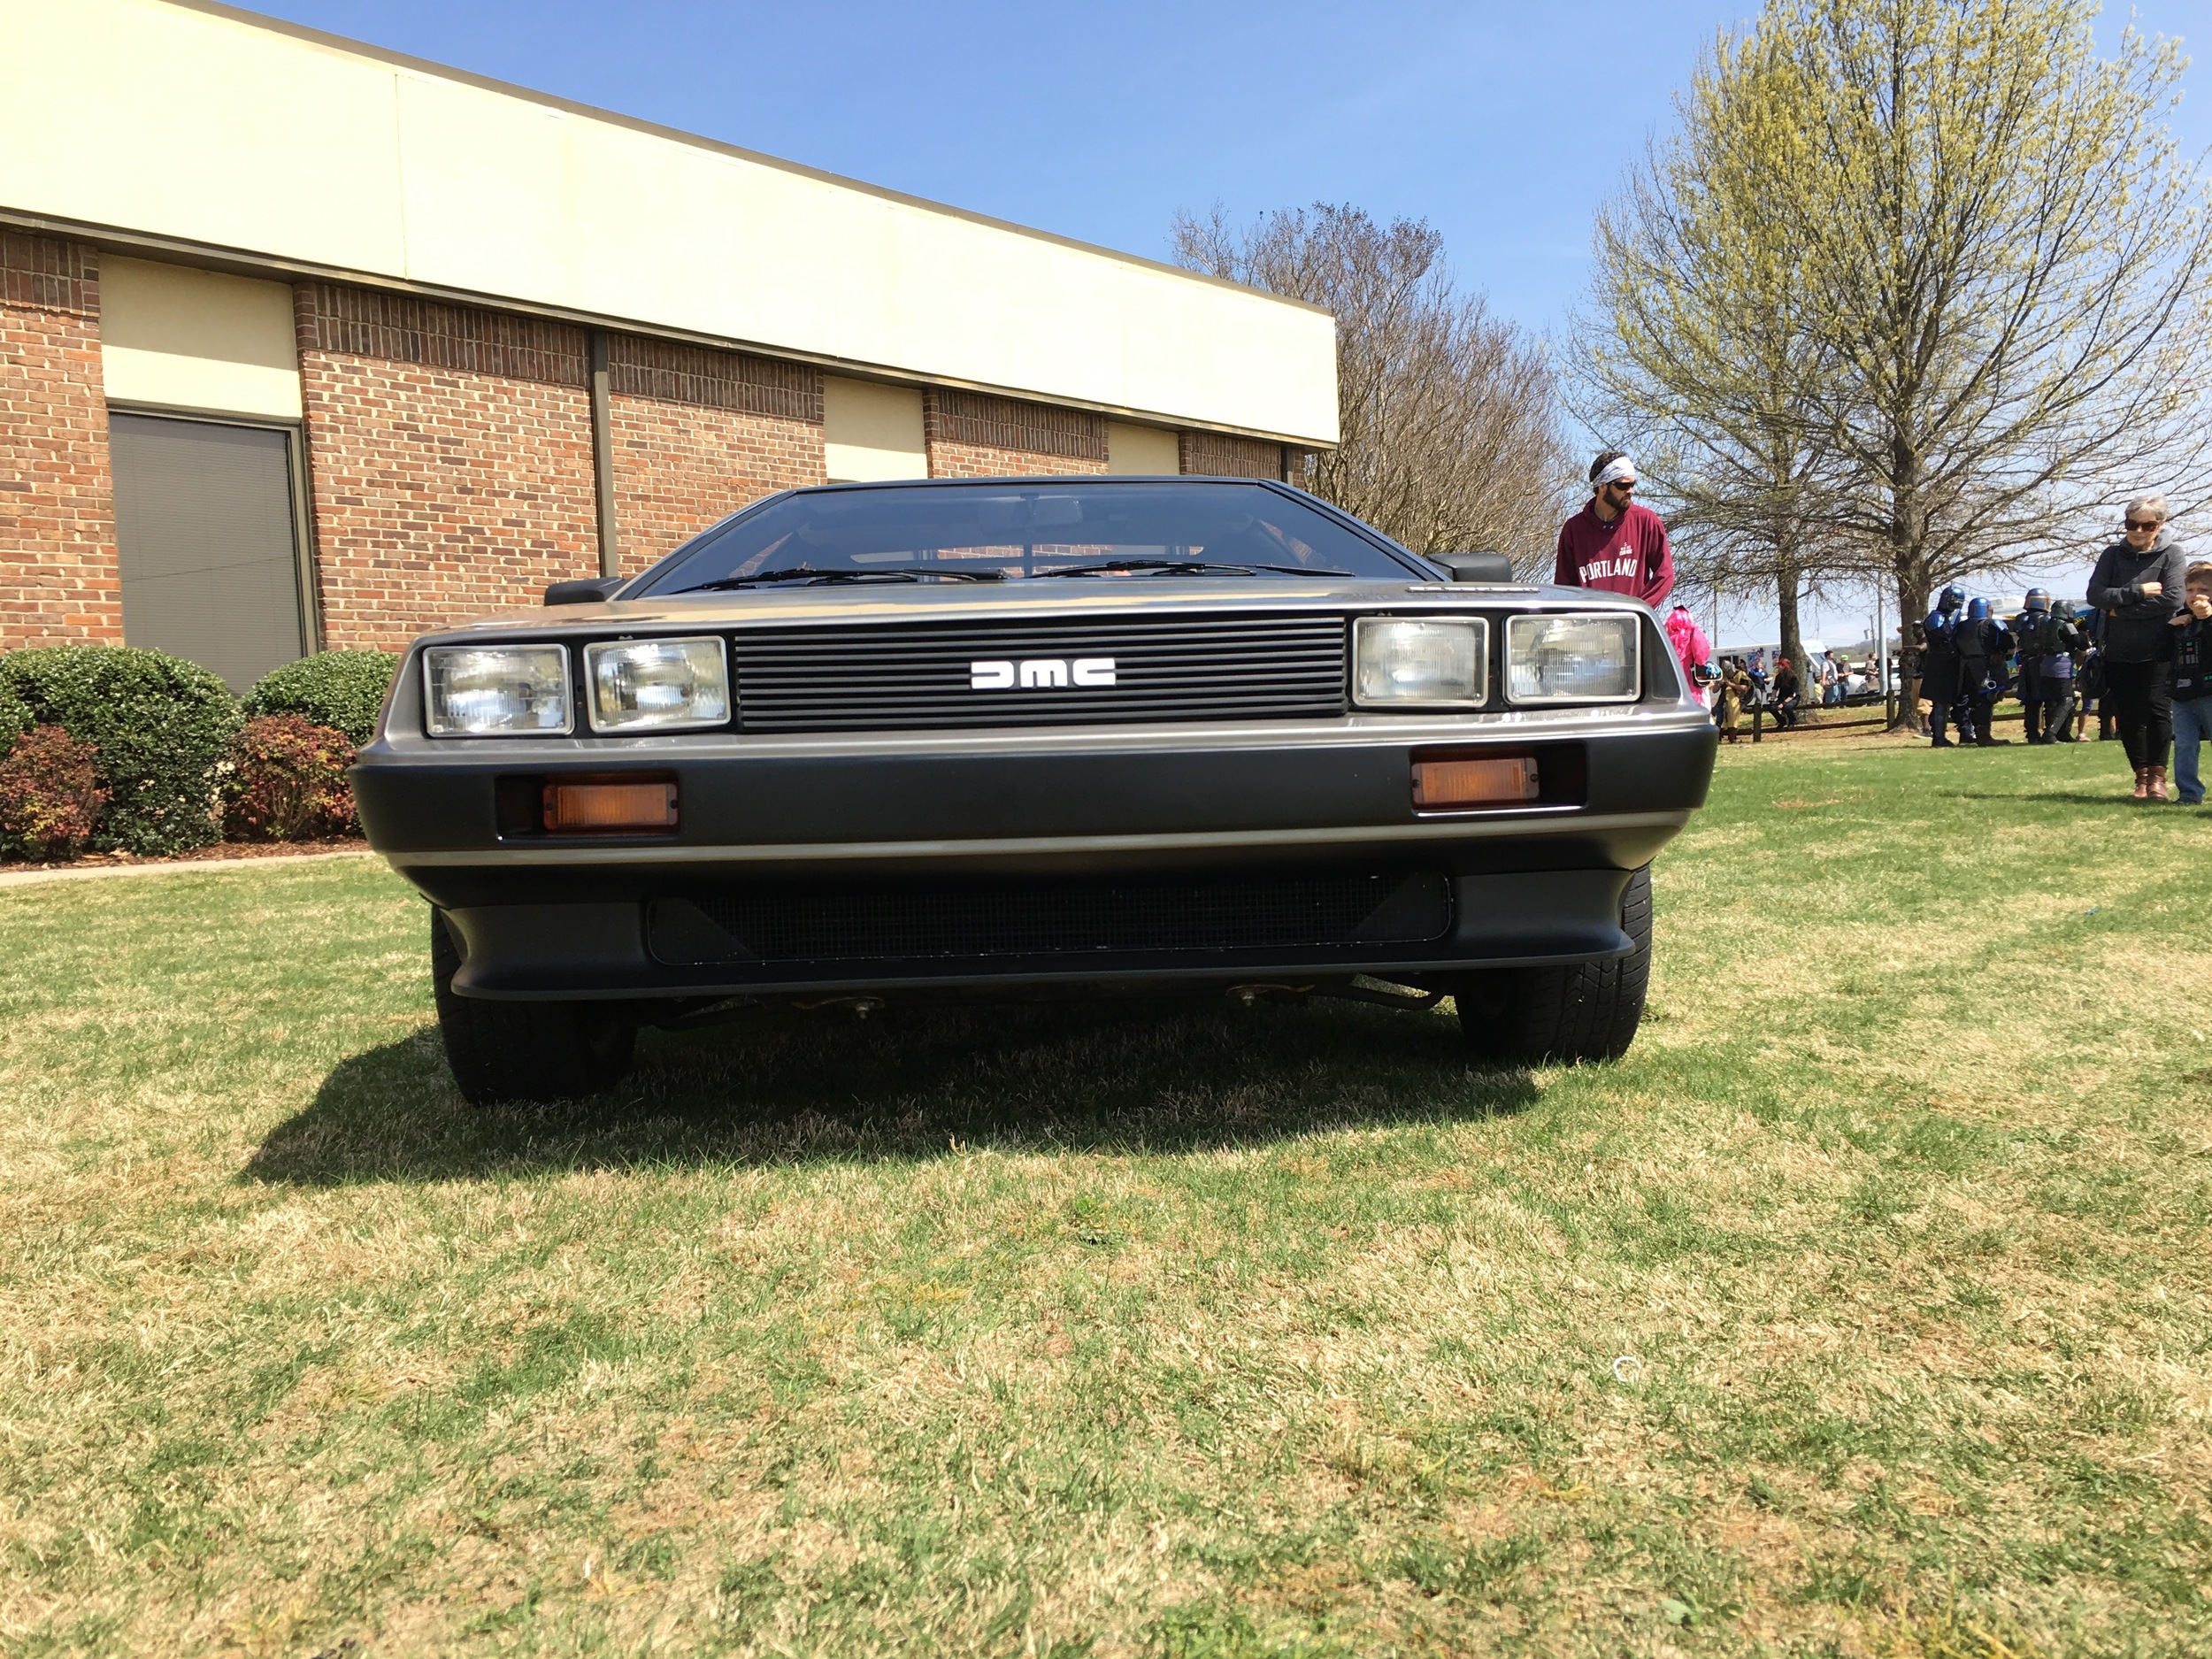 We almost ran outta time to check out this nice DeLorean!